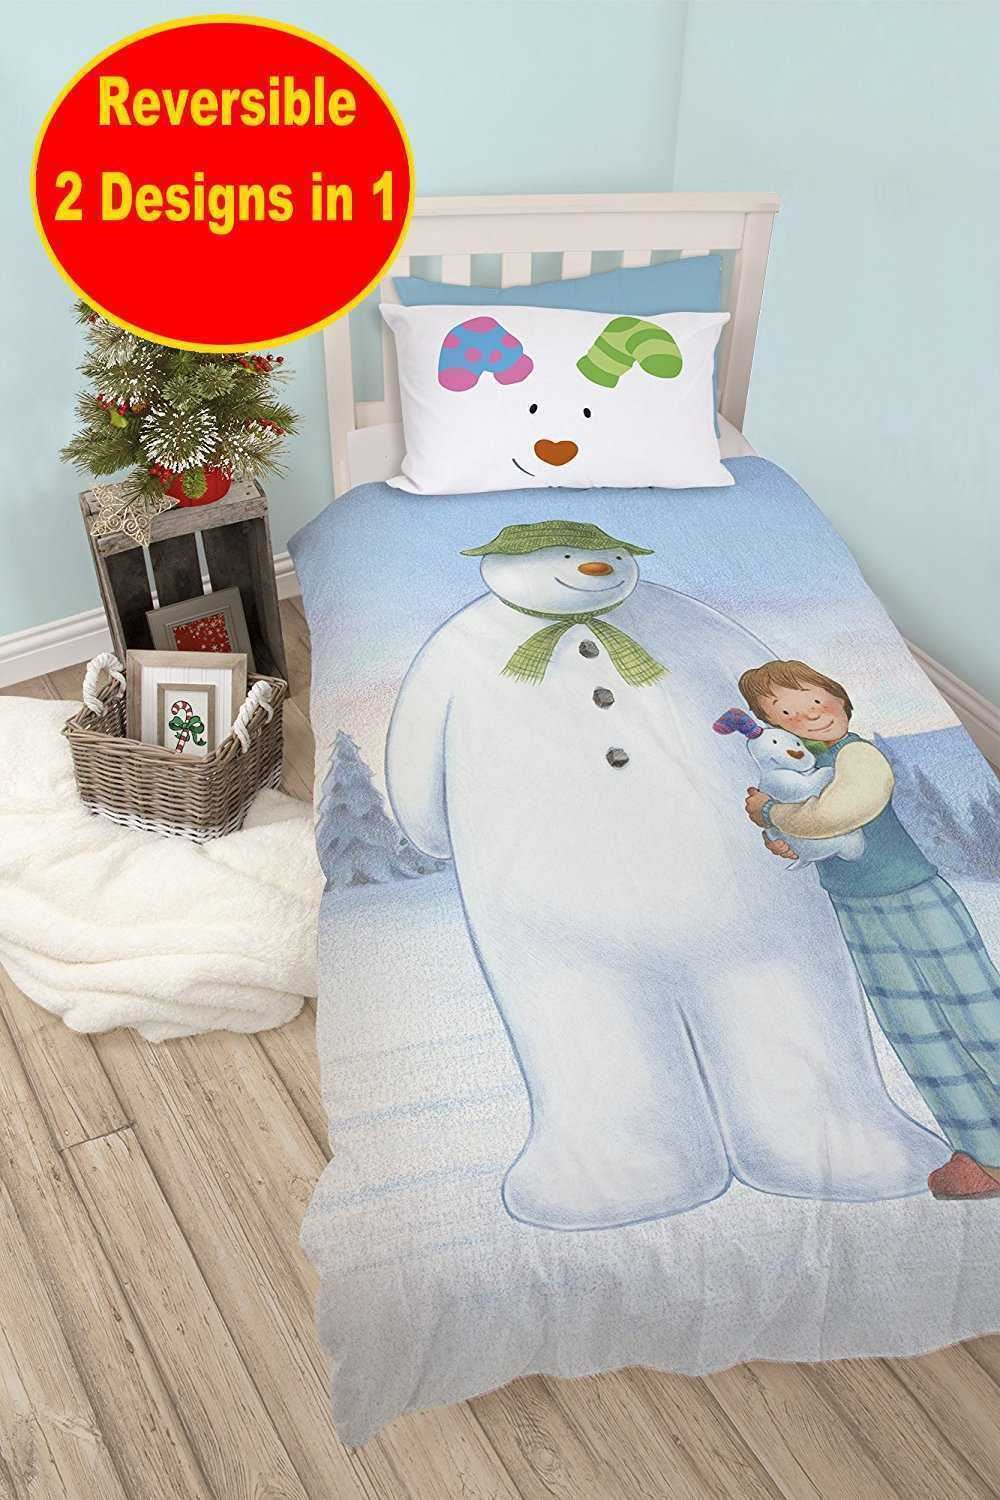 Official-The-Snowman-Duvet-Cover-Single-Double-Reversible-Bedding-Fleece-Blanket thumbnail 18